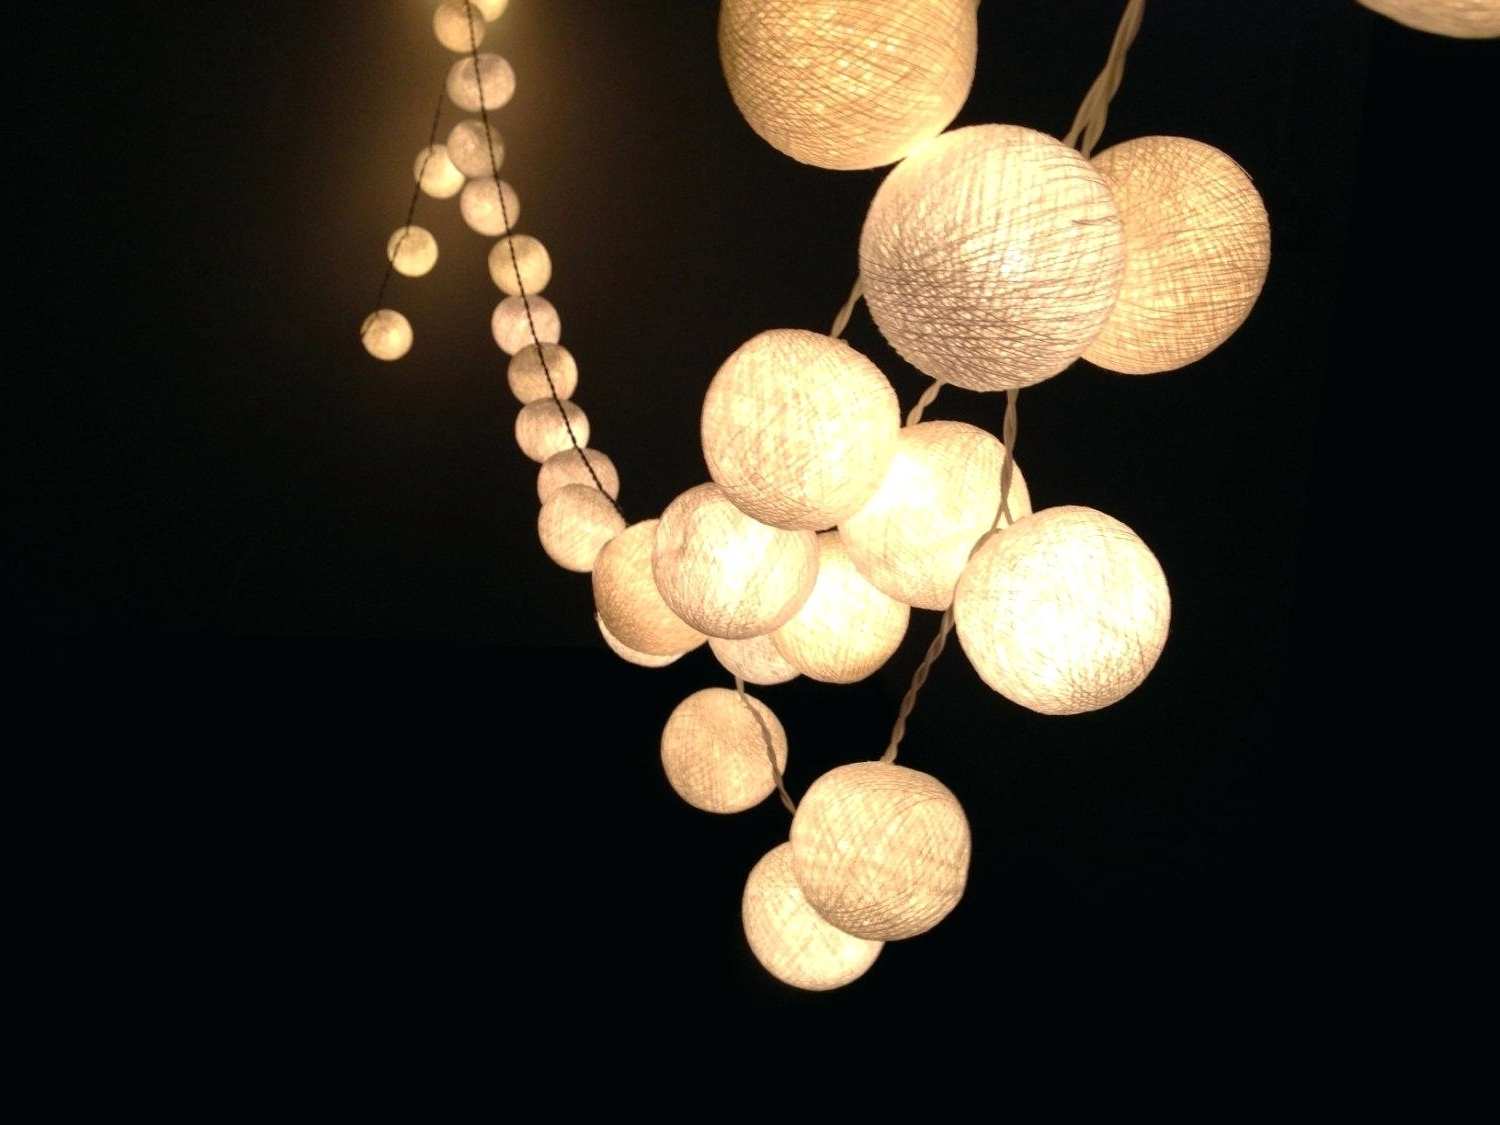 Diy : Party String Lights Australia Target Outdoor Ireland Lanterns Pertaining To Current Outdoor Hanging Lights At Target (View 2 of 20)